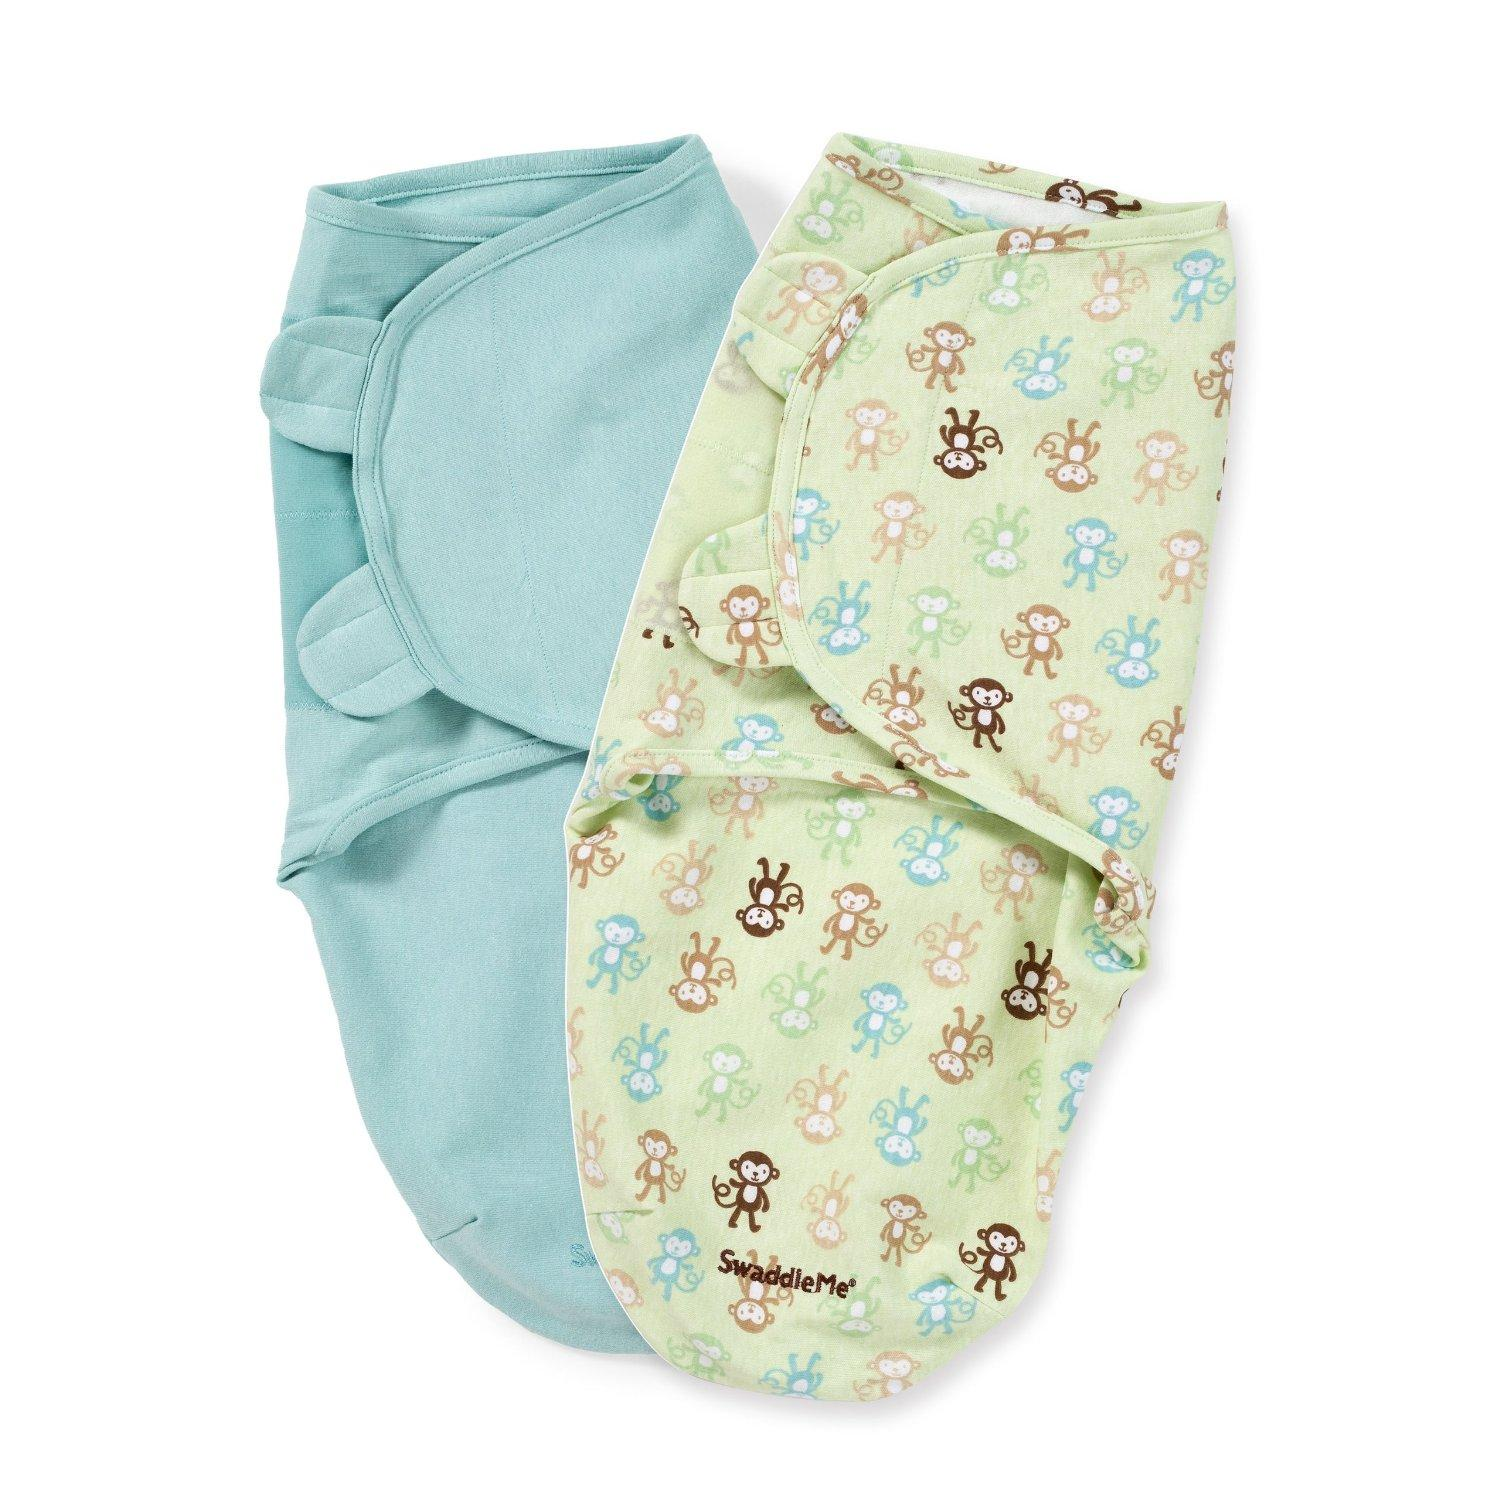 Summer Infant 2 Count Swaddleme Blanket, Monkey Fun, Small